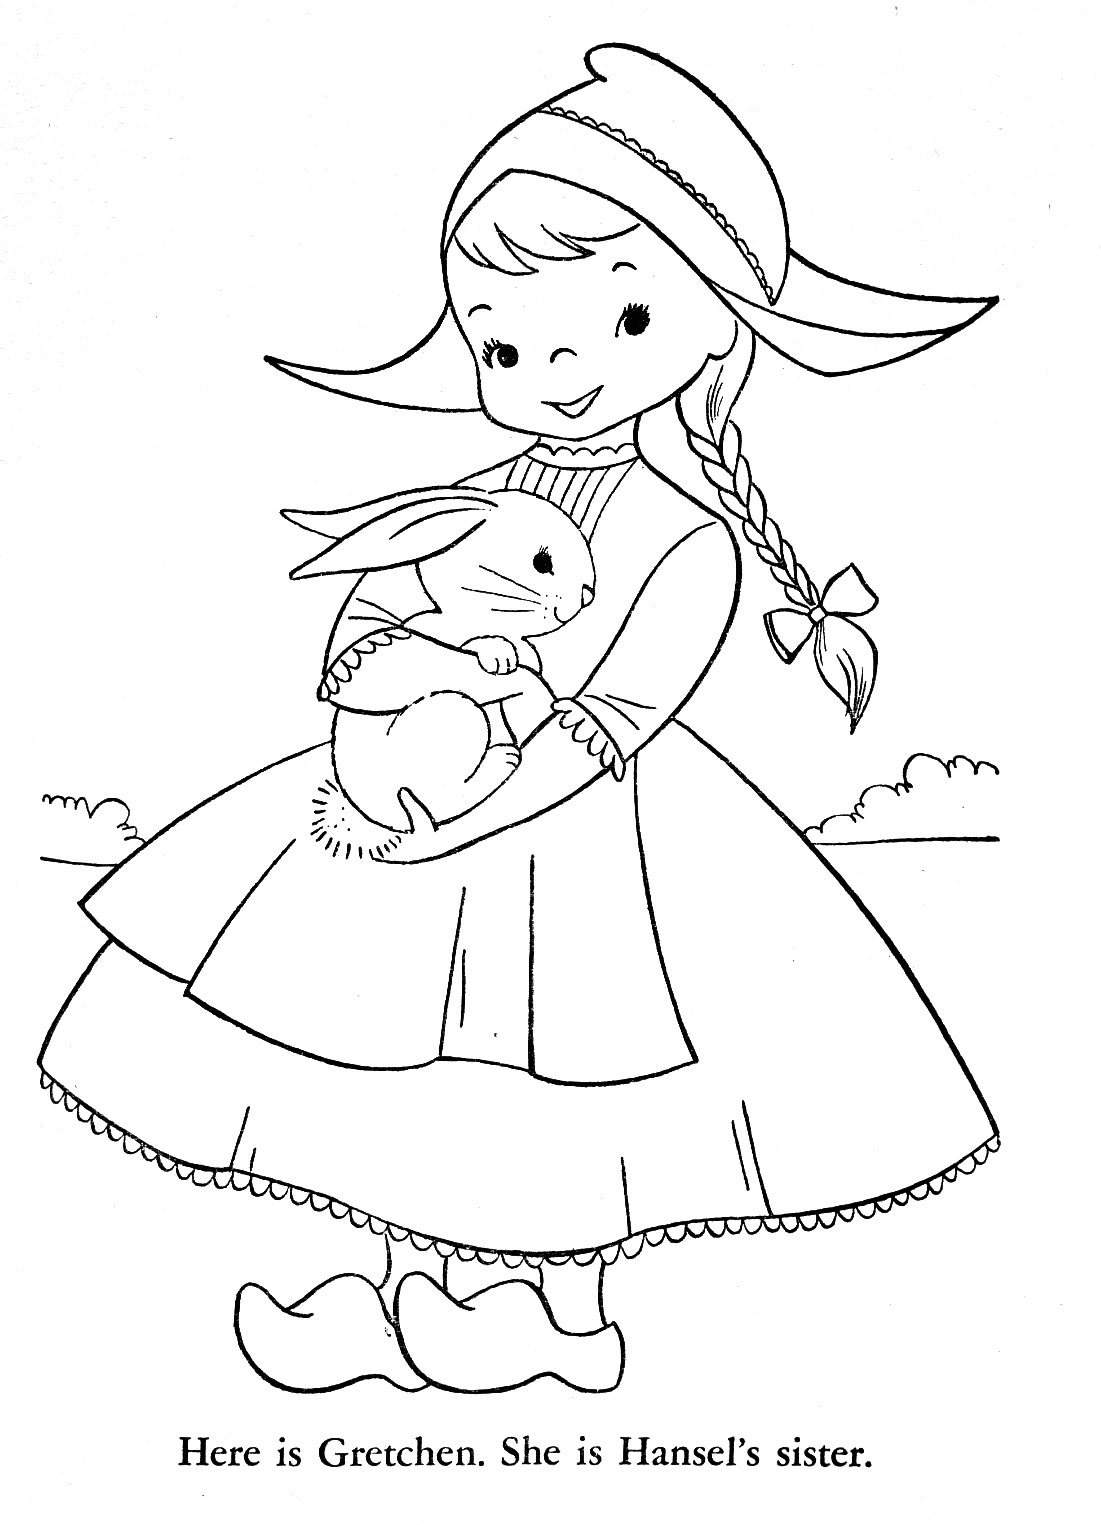 holland coloring pages - photo#6